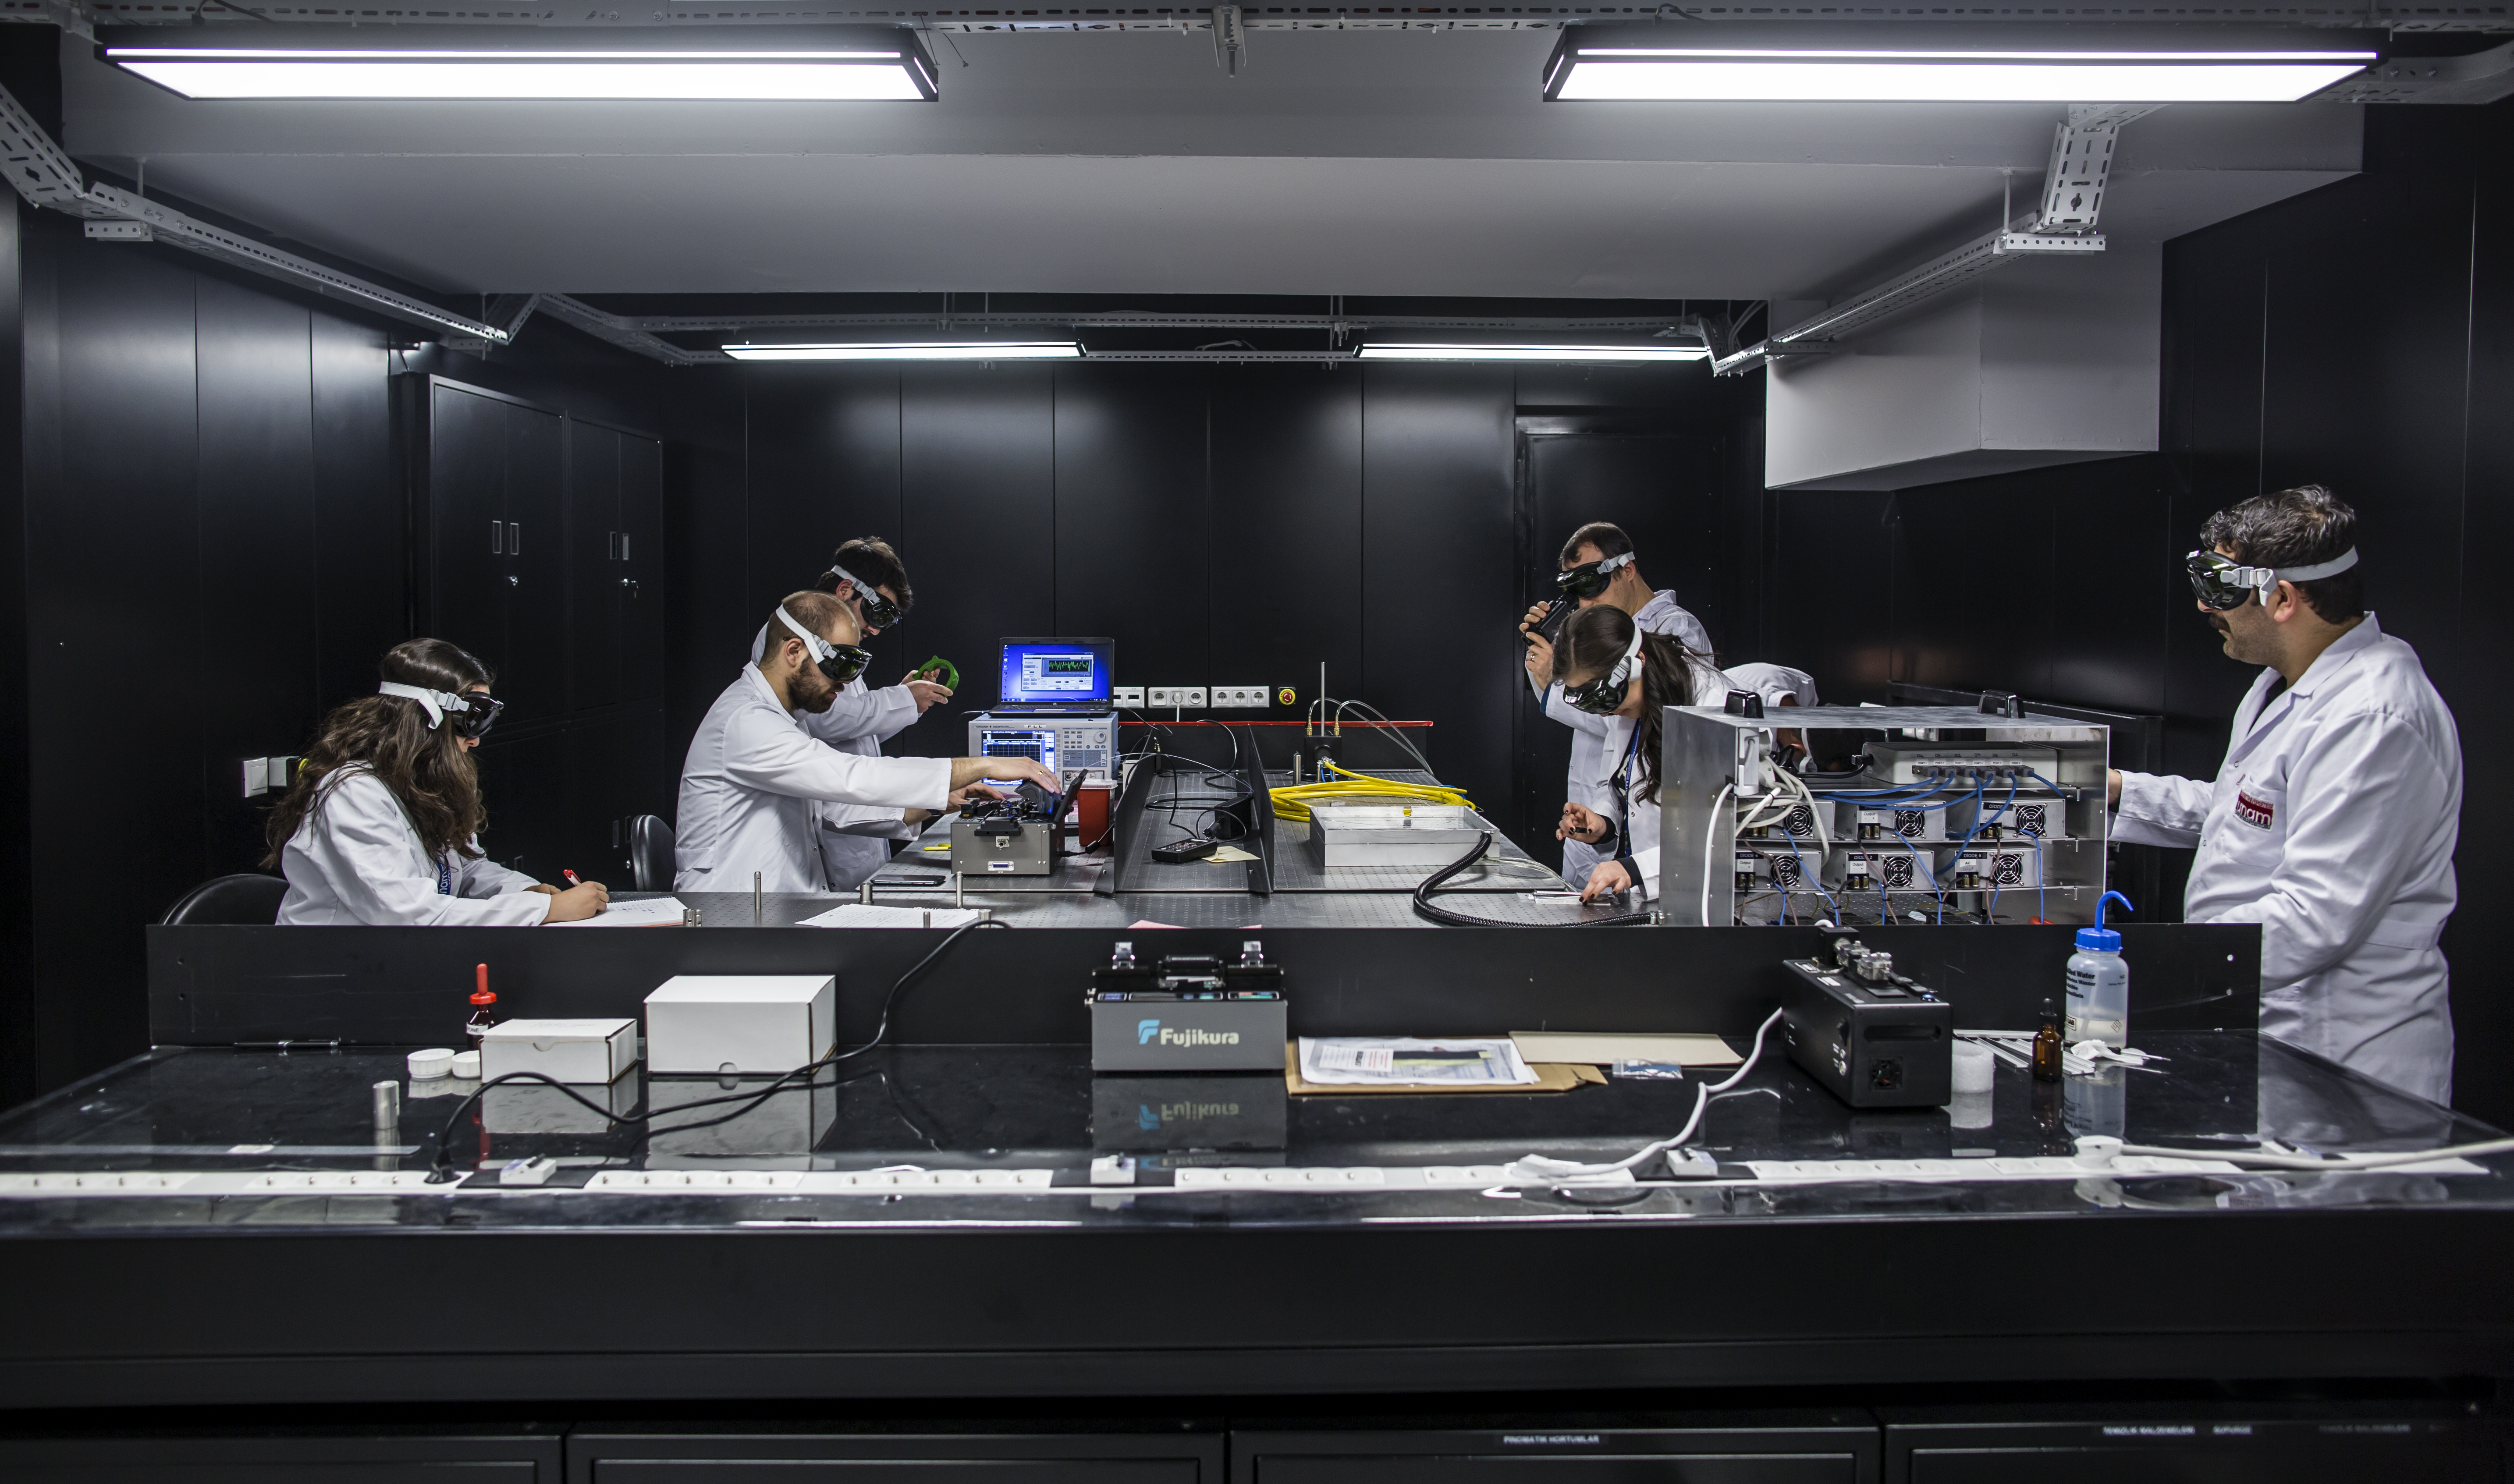 <h2>High Power Laser Laboratory</h2><div class='slide-content'></div><a href='http://www.ortacgroup.org/high-power-laser-lab/?customize_changeset_uuid=986d0b84-a912-4a0a-9ee9-35c380cbc388&customize_autosaved=on' class='btn' title='Read more'>Read more</a>